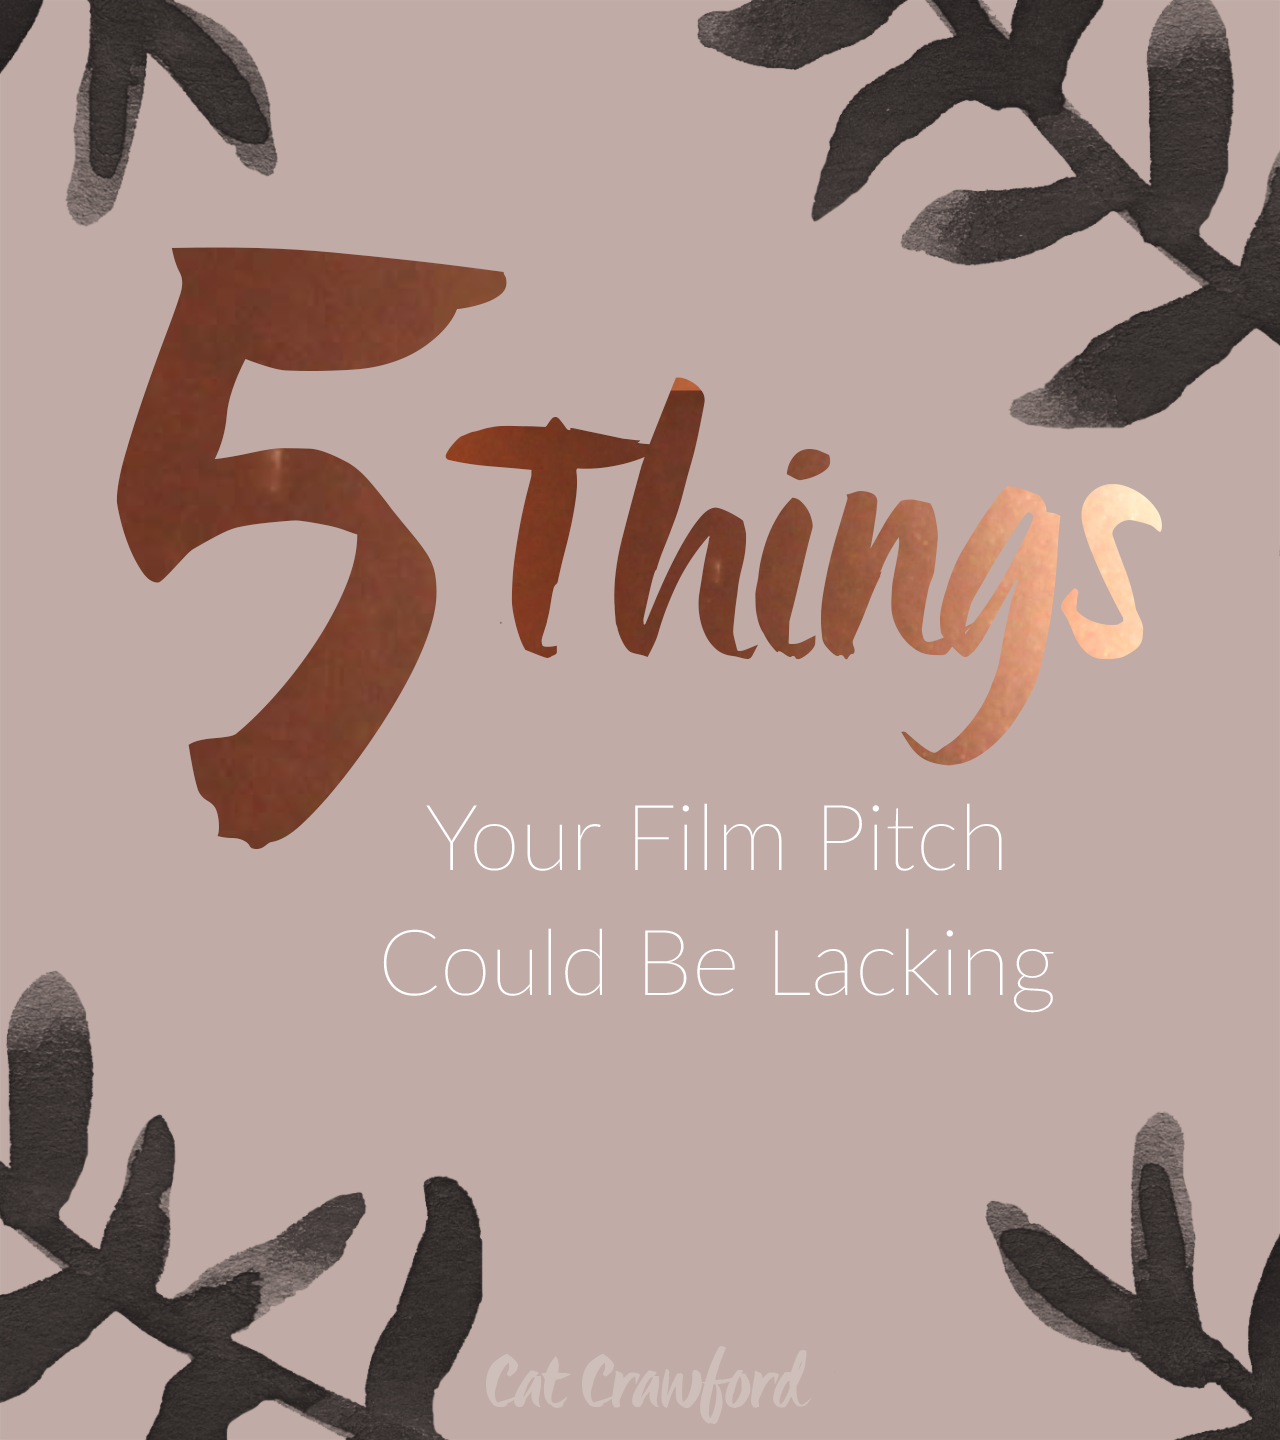 Five Things Your Film Pitch Could Be Lacking